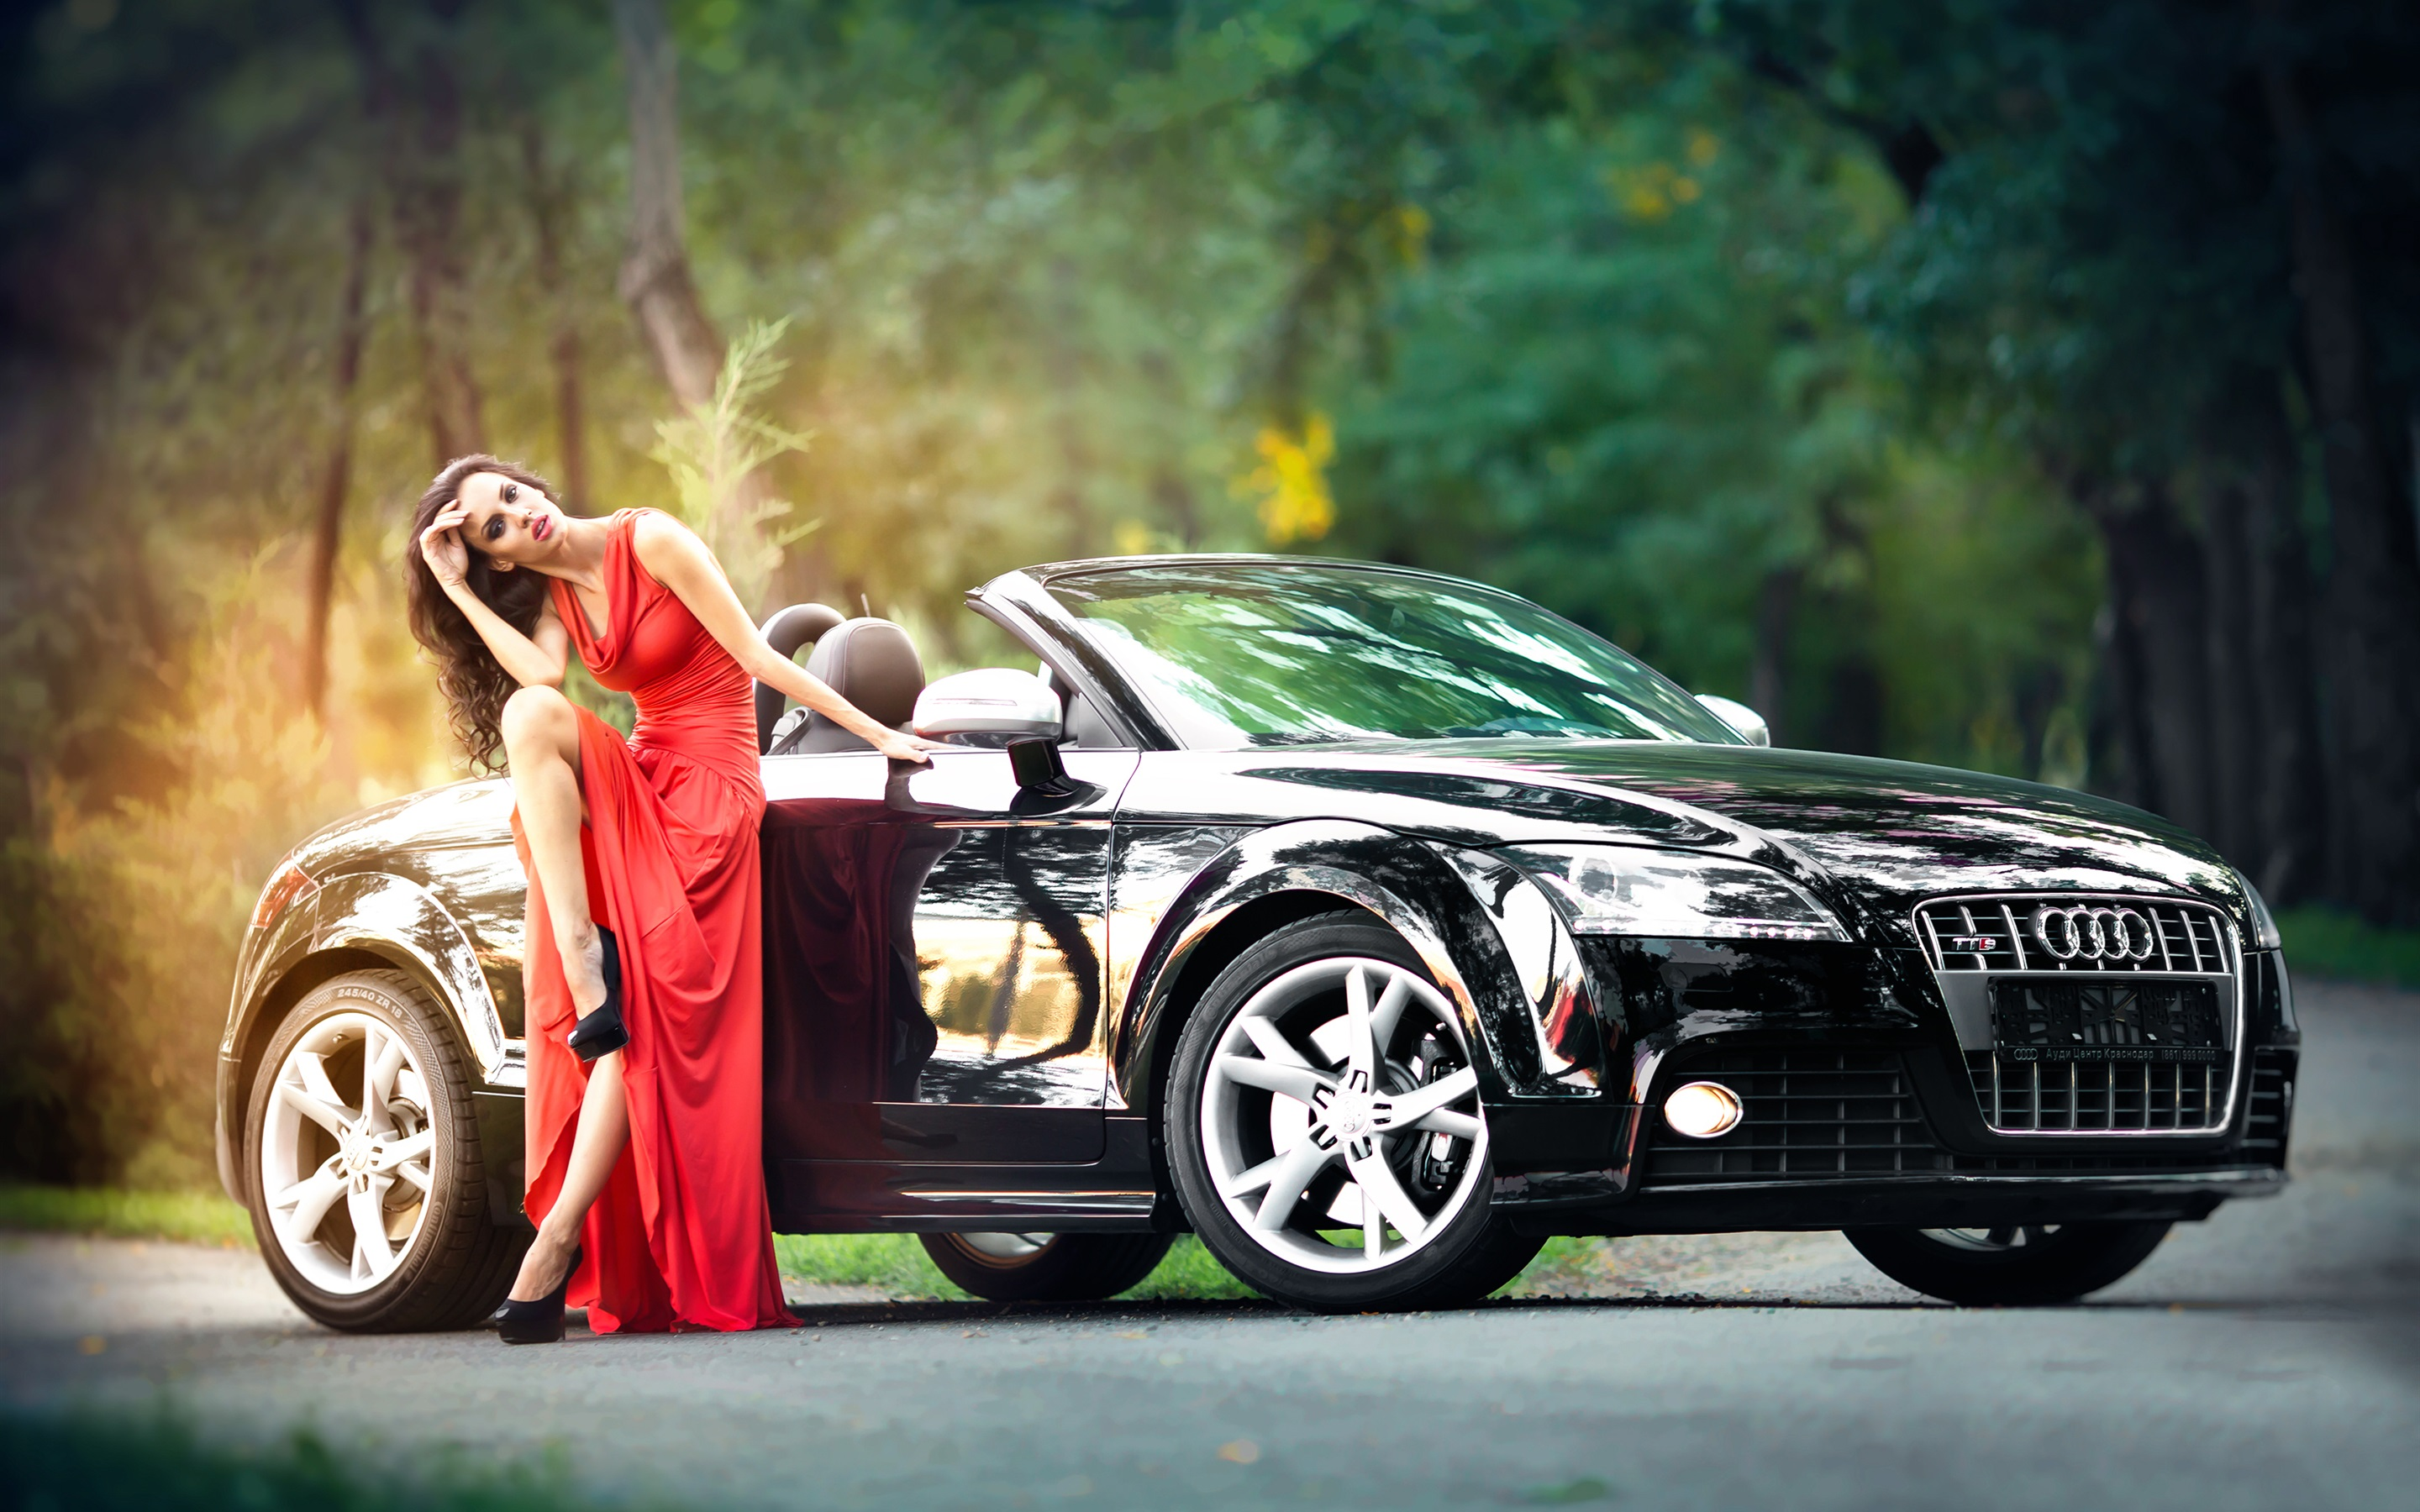 Wallpaper Red Dress Girl And Black Audi Car 2880x1800 HD Picture Image